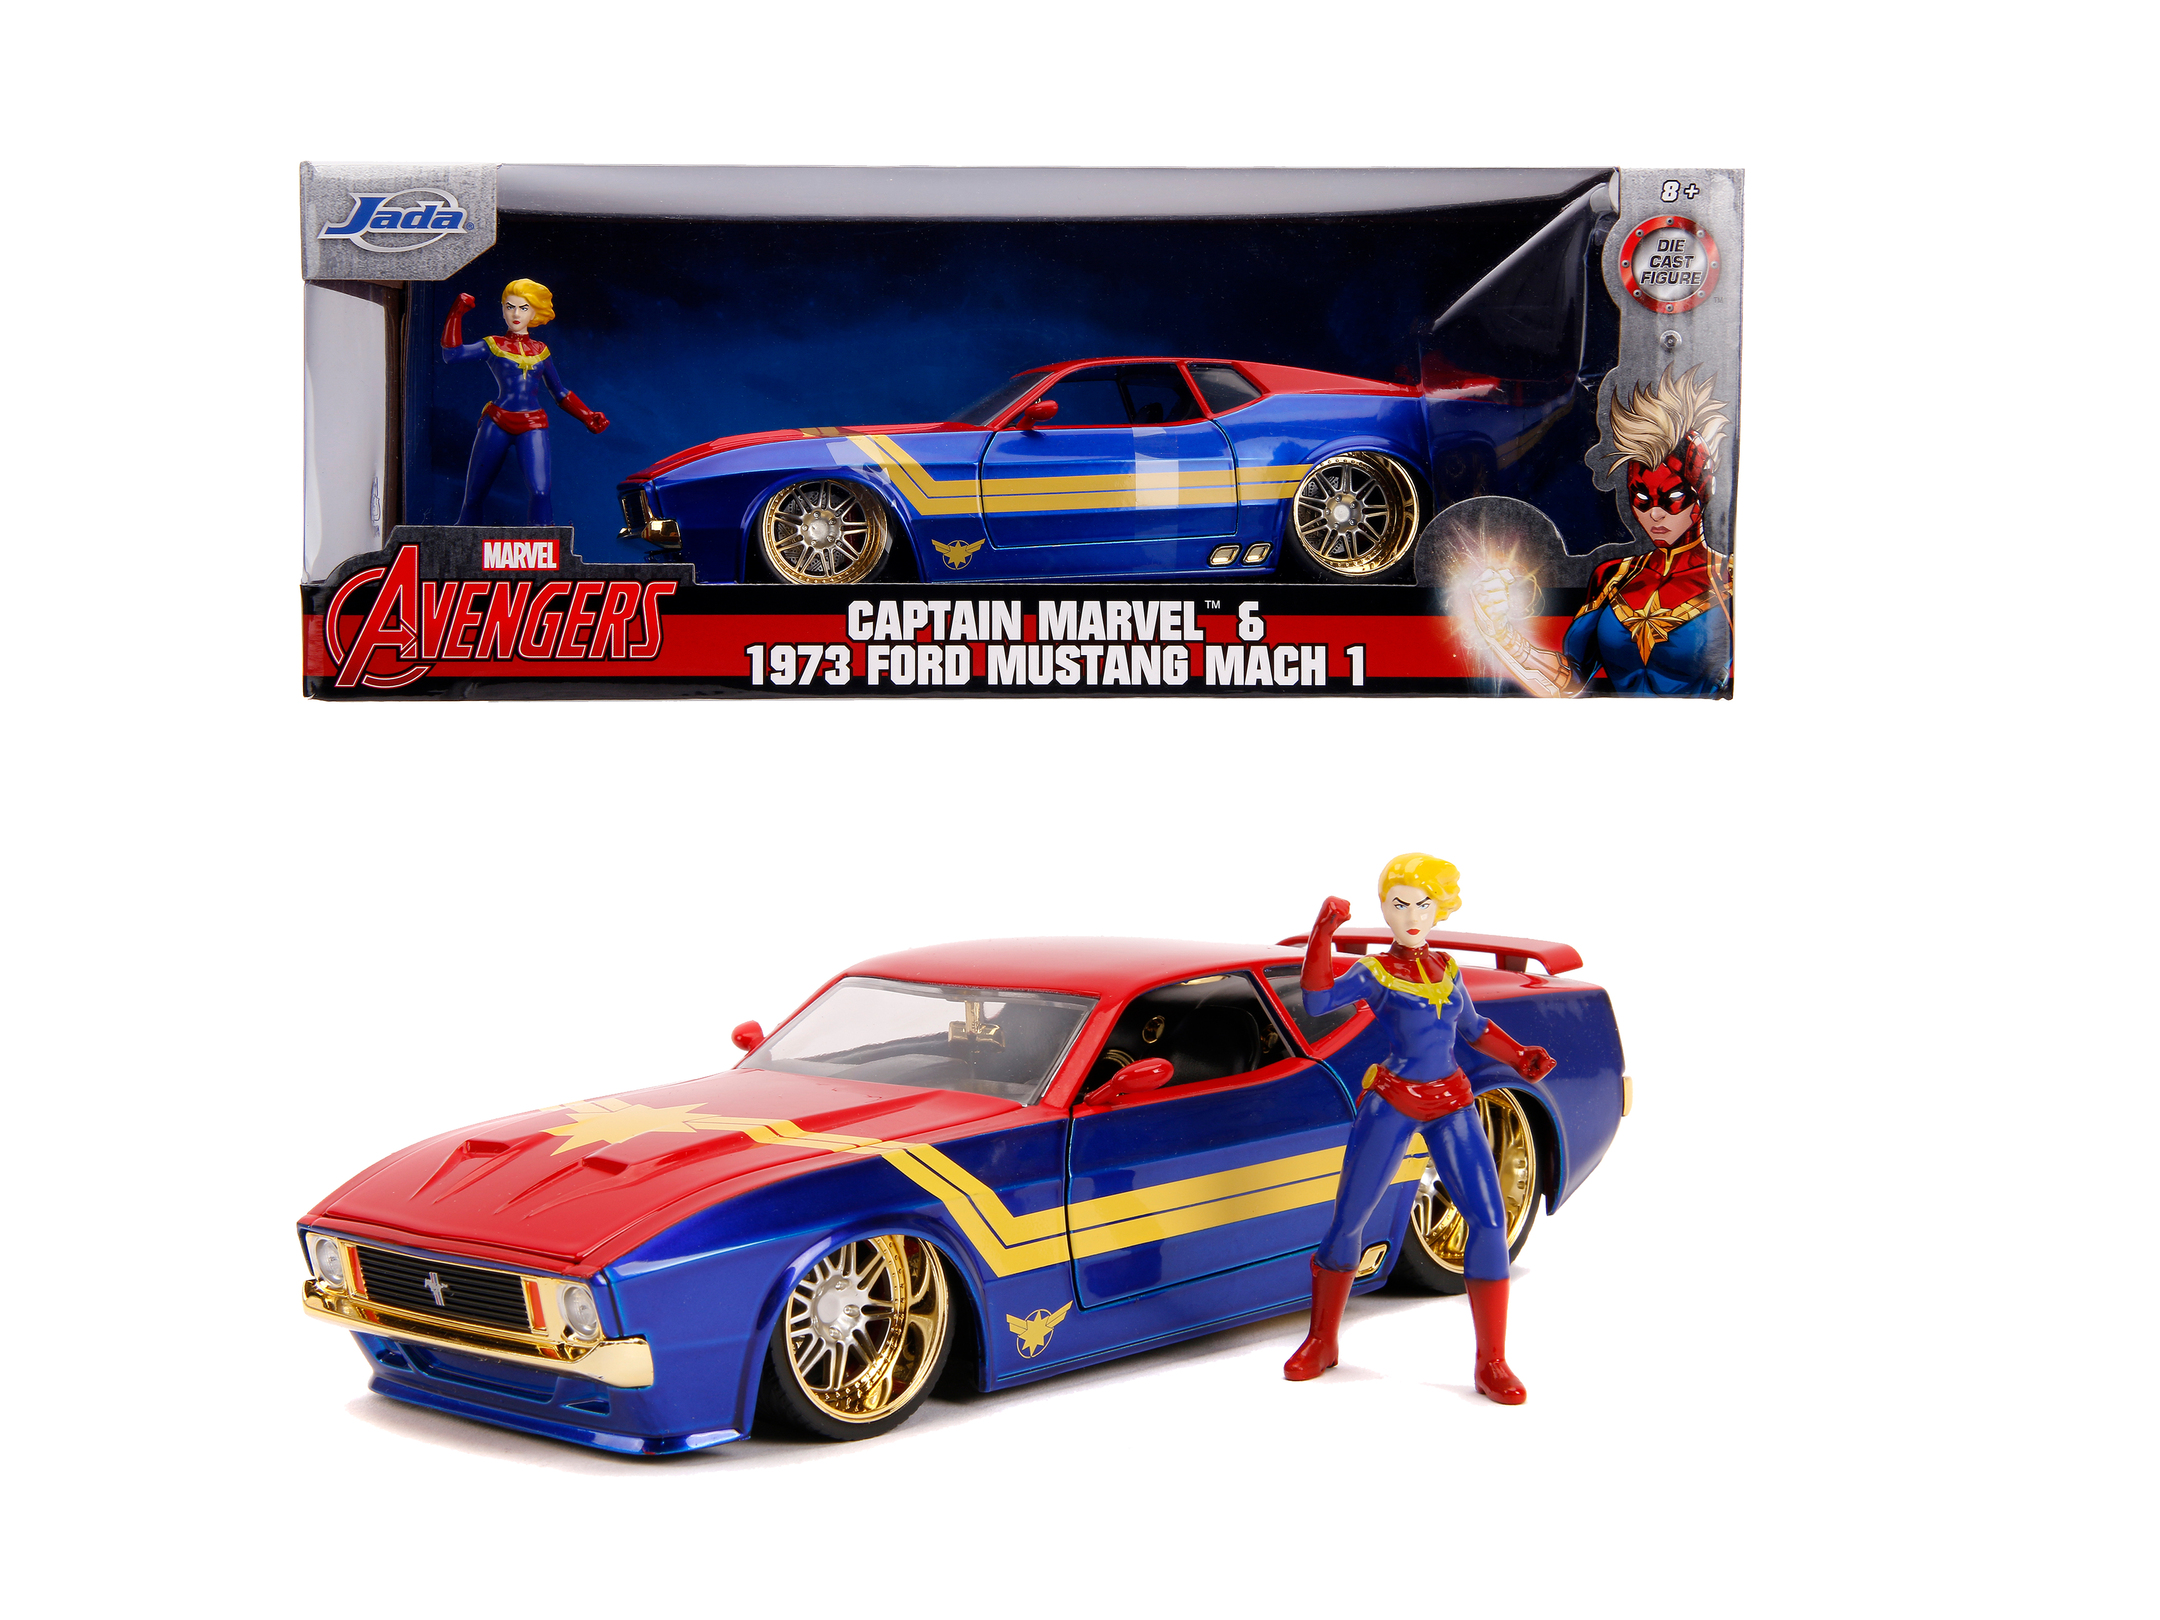 Marvel Avengers Ford Mustang Mach 1 1:24